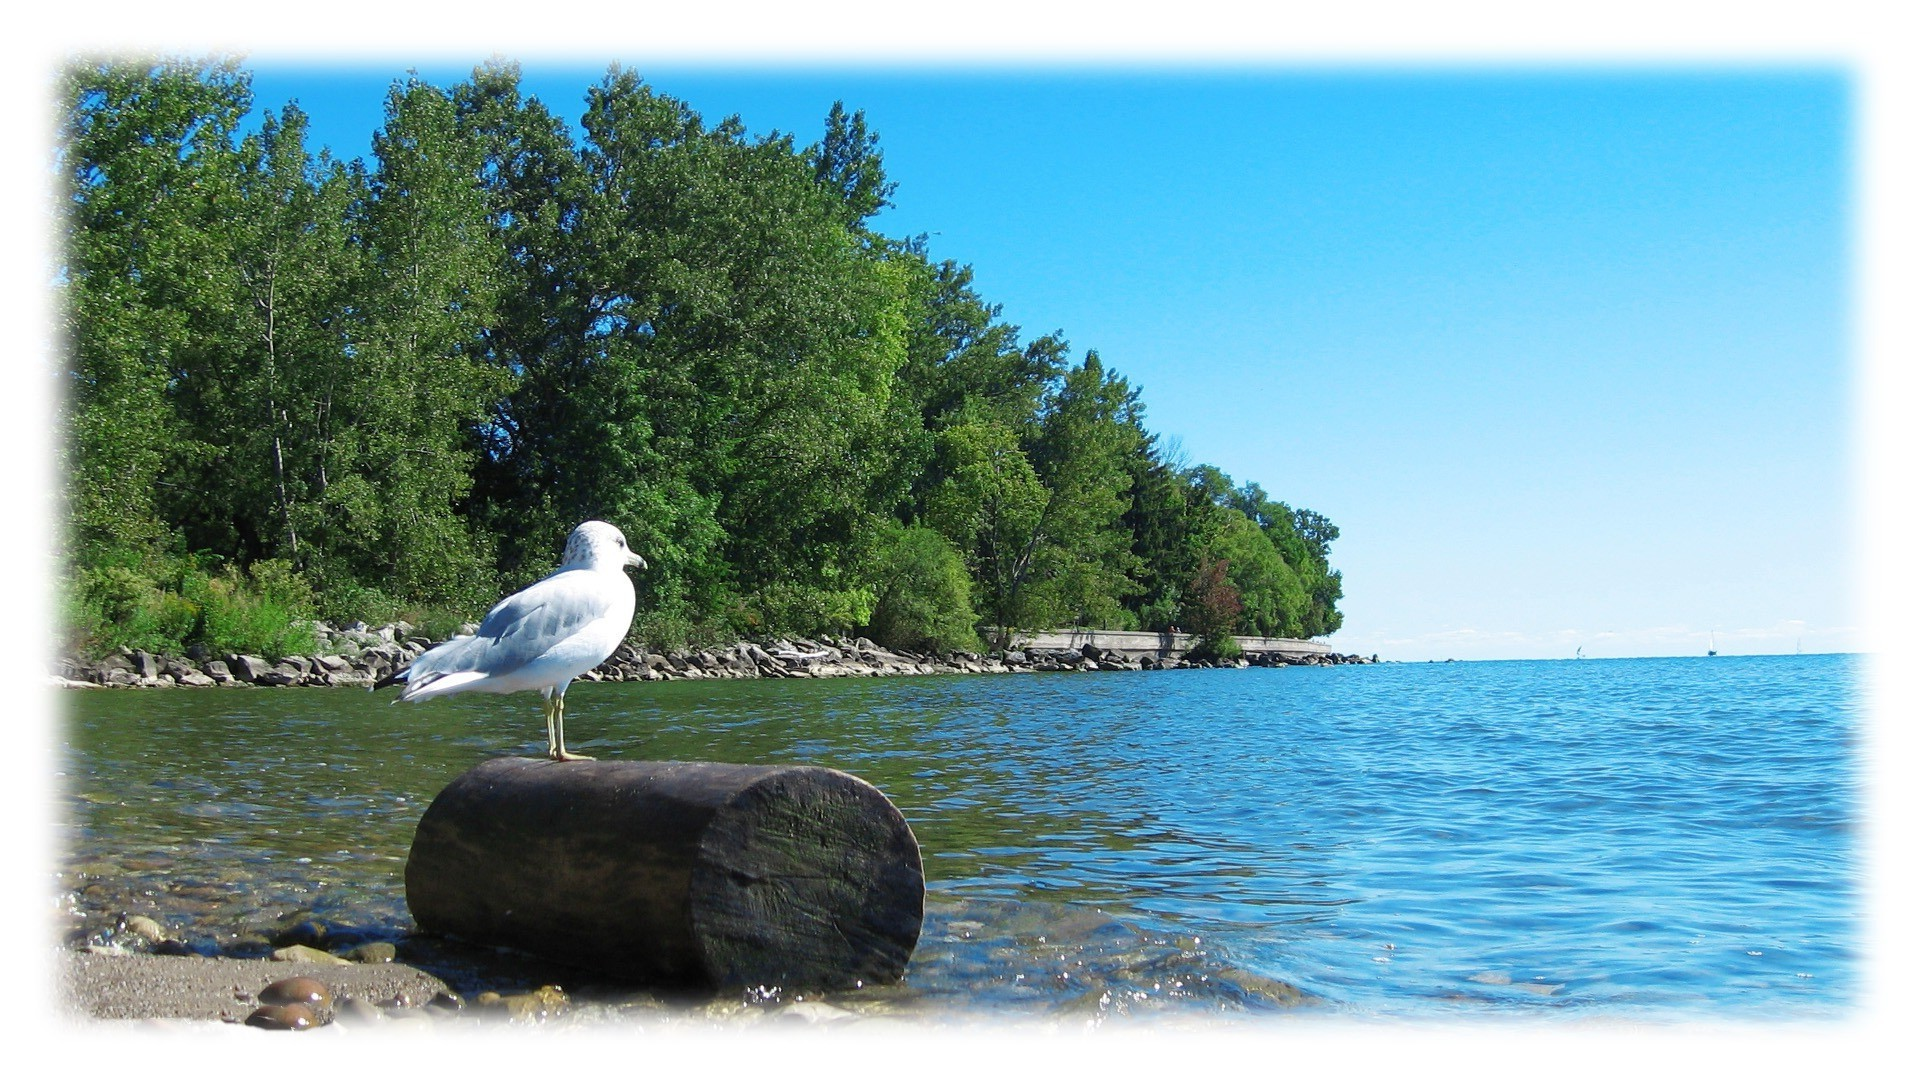 Seagull on a log at the river